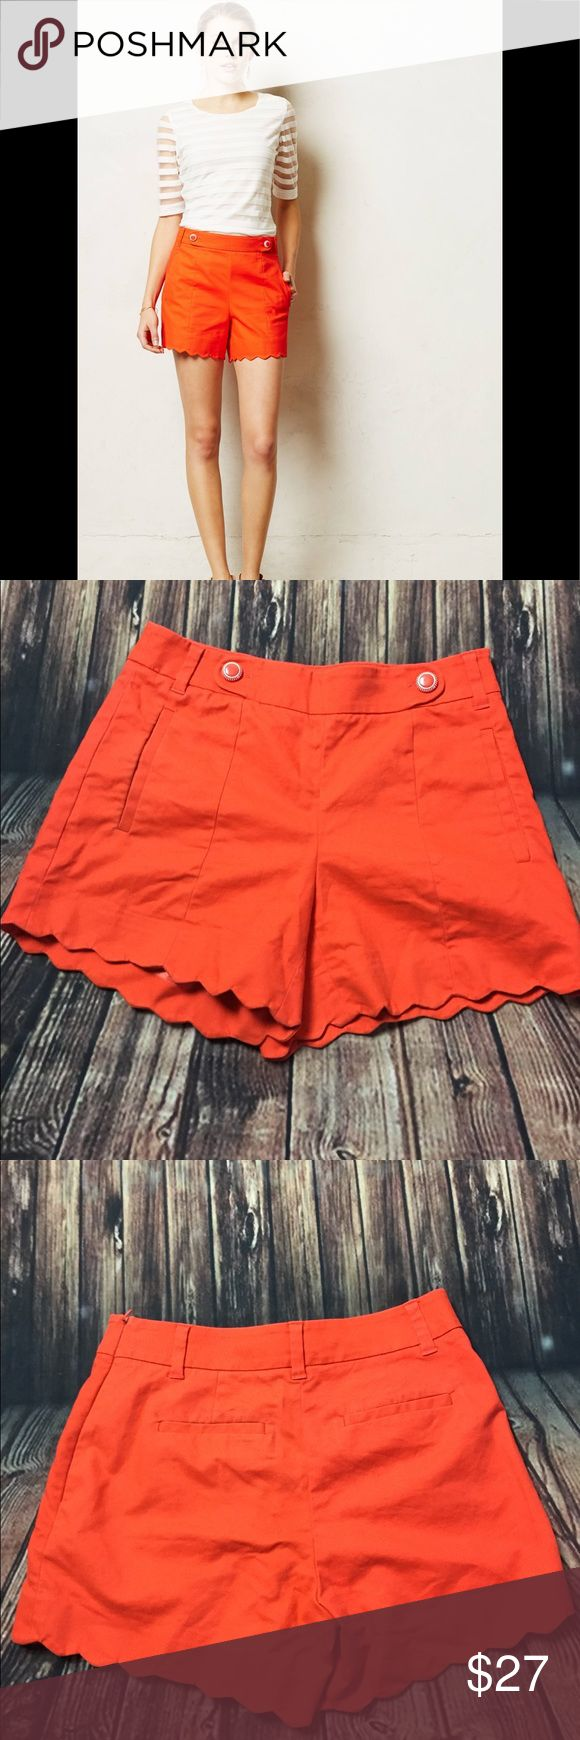 "Anthropologie Cartonnier Scalloped Sailor Shorts Like new conditionAnthropologie Cartonnier Orange Shorts, Women's Size 0 Scalloped bottom hem Front, back welt pockets Cotton, spandex Machine wash 4.5"" inseam Imported Anthropologie Shorts"